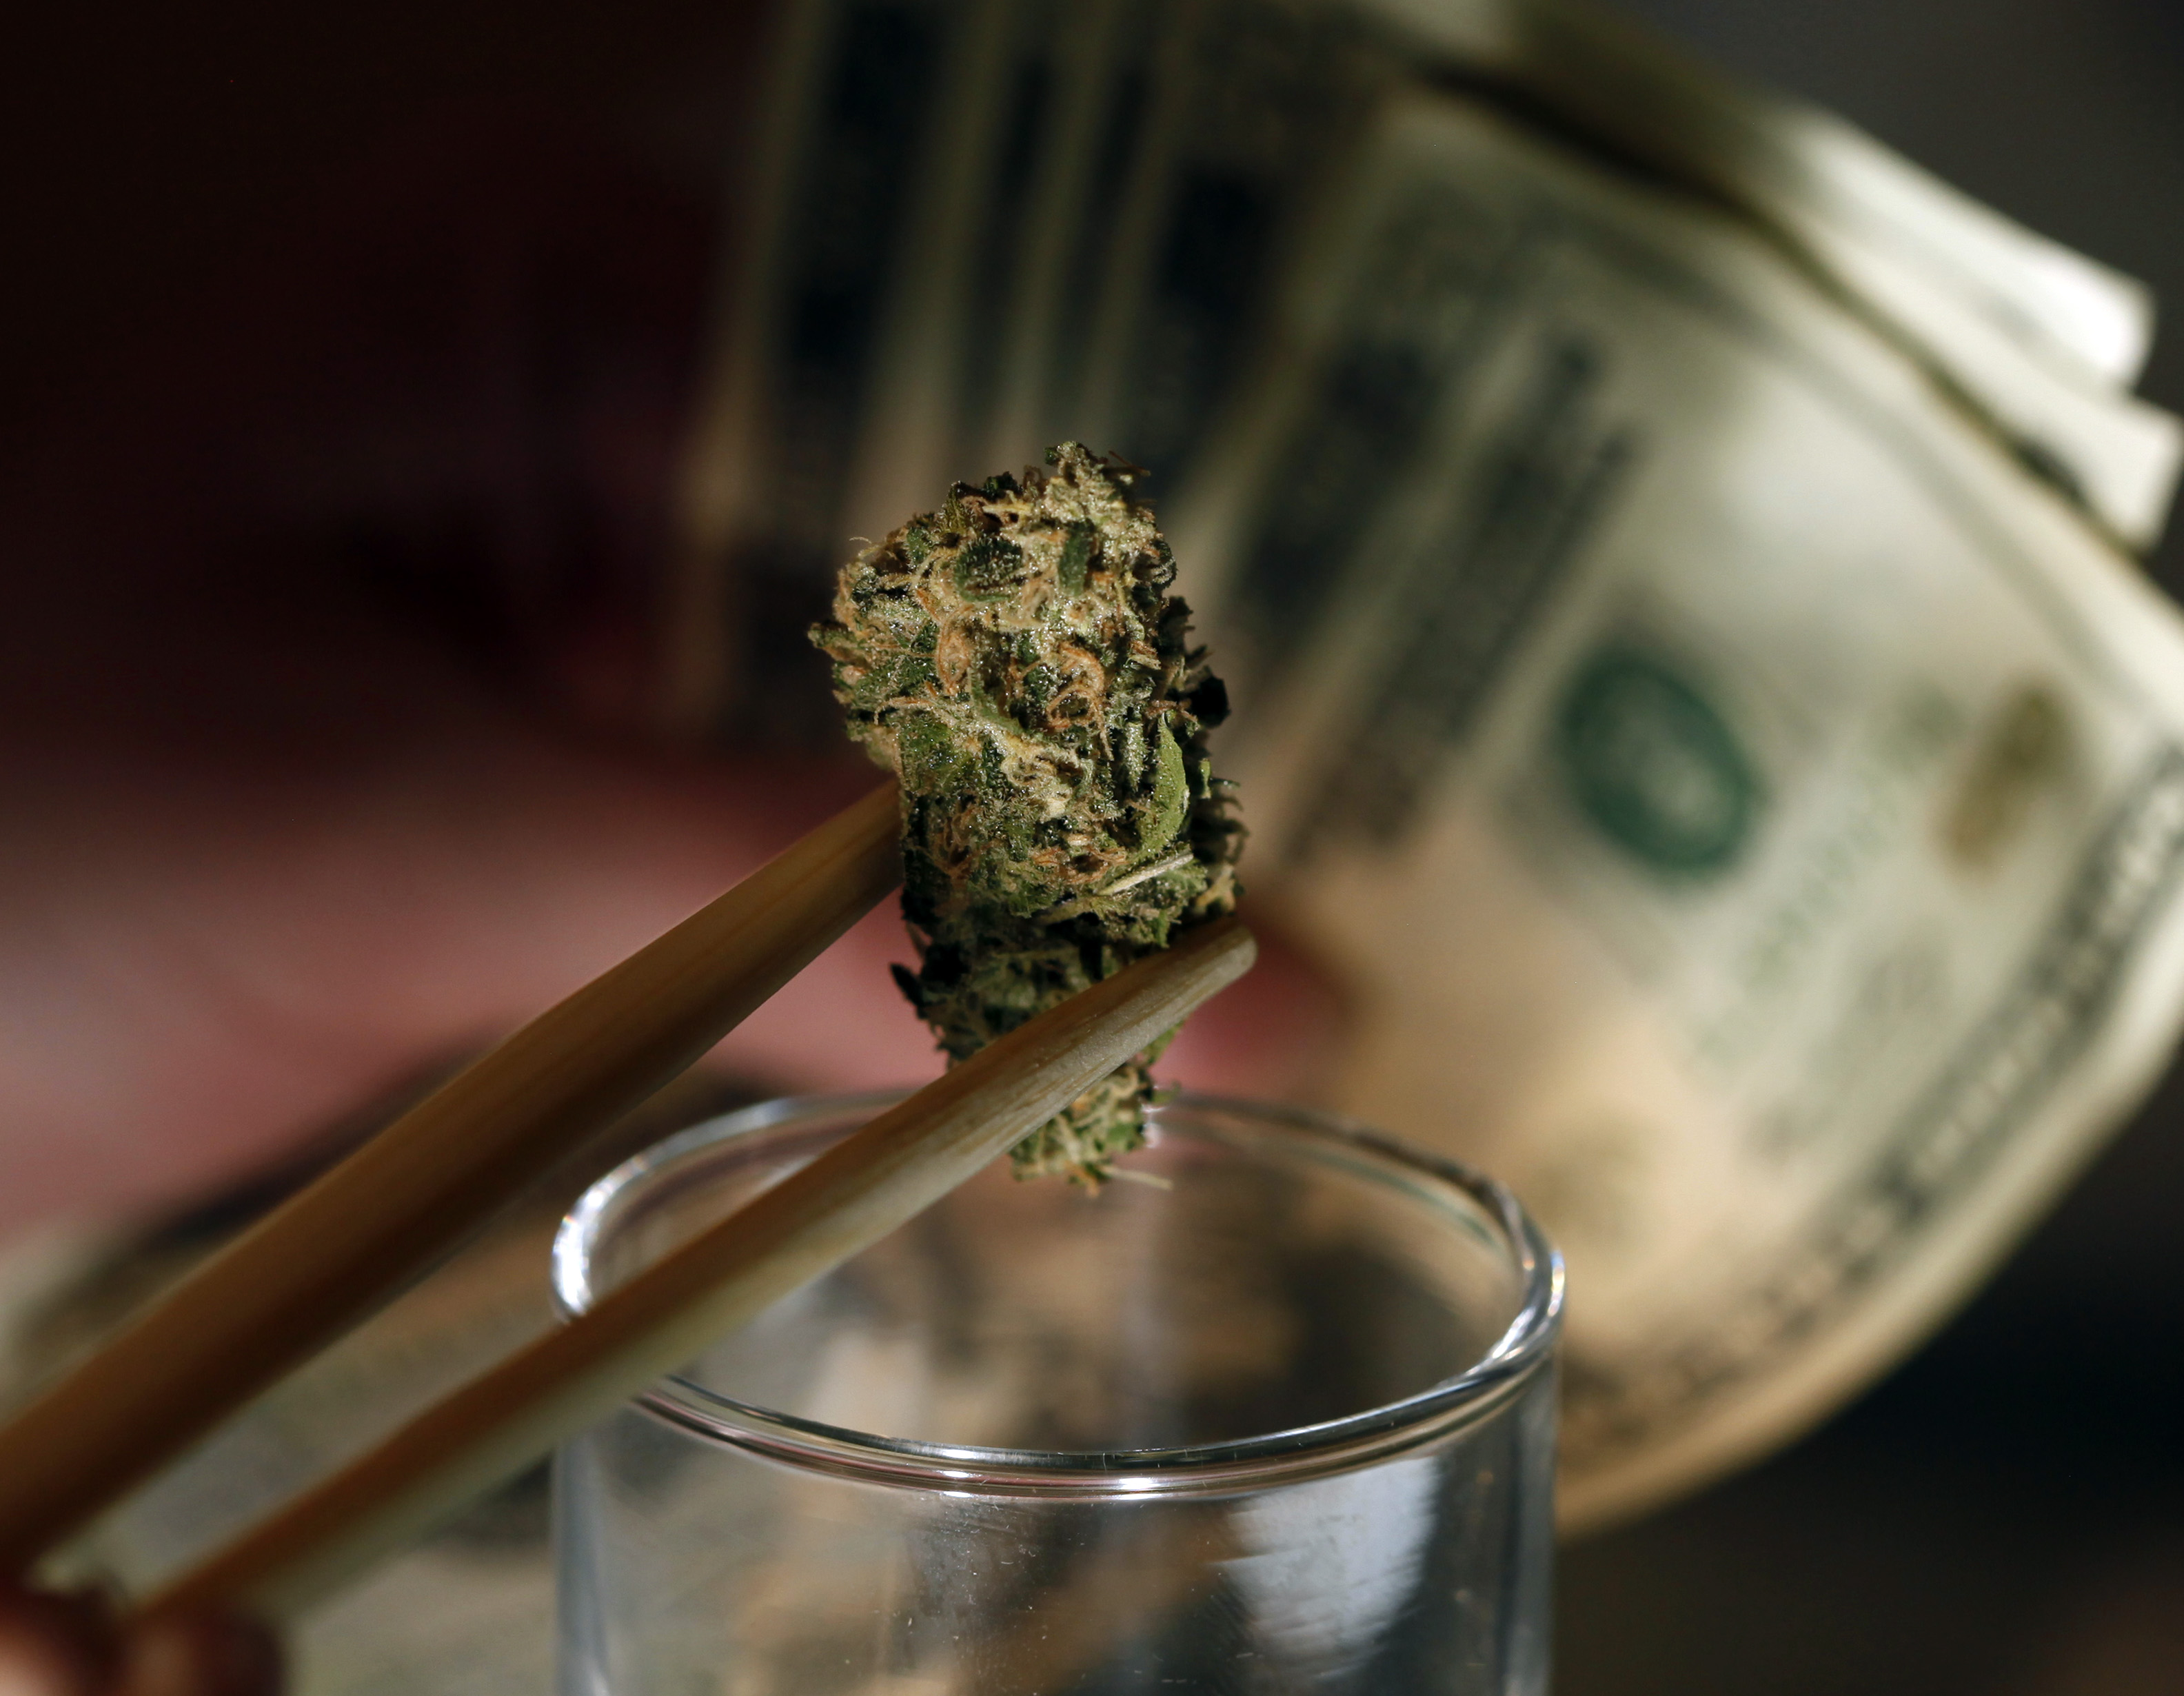 Photo: Marijuana bud, dollars bills in background, Denver dispensary (AP Photo)